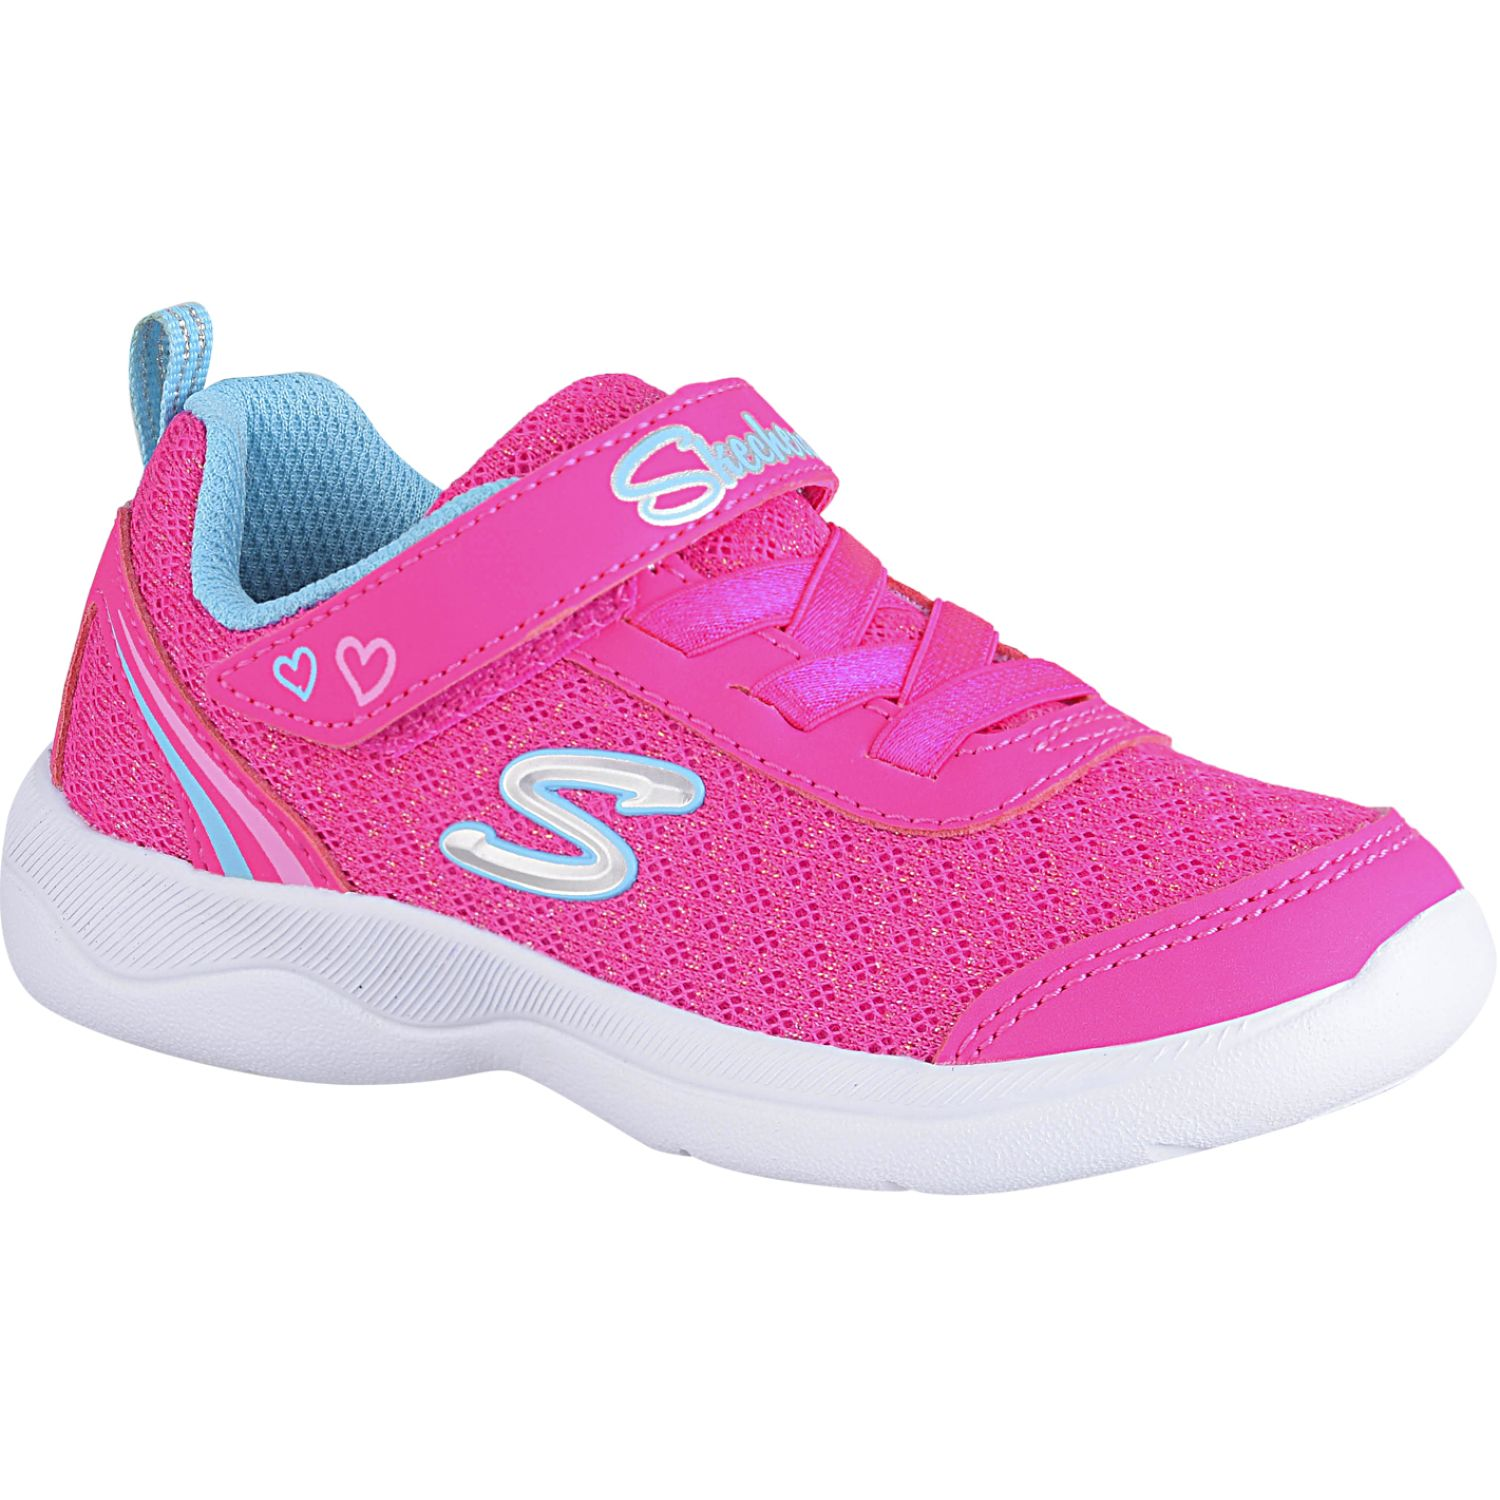 Skechers SKECH-STEPZ 2.0 Rosado Walking